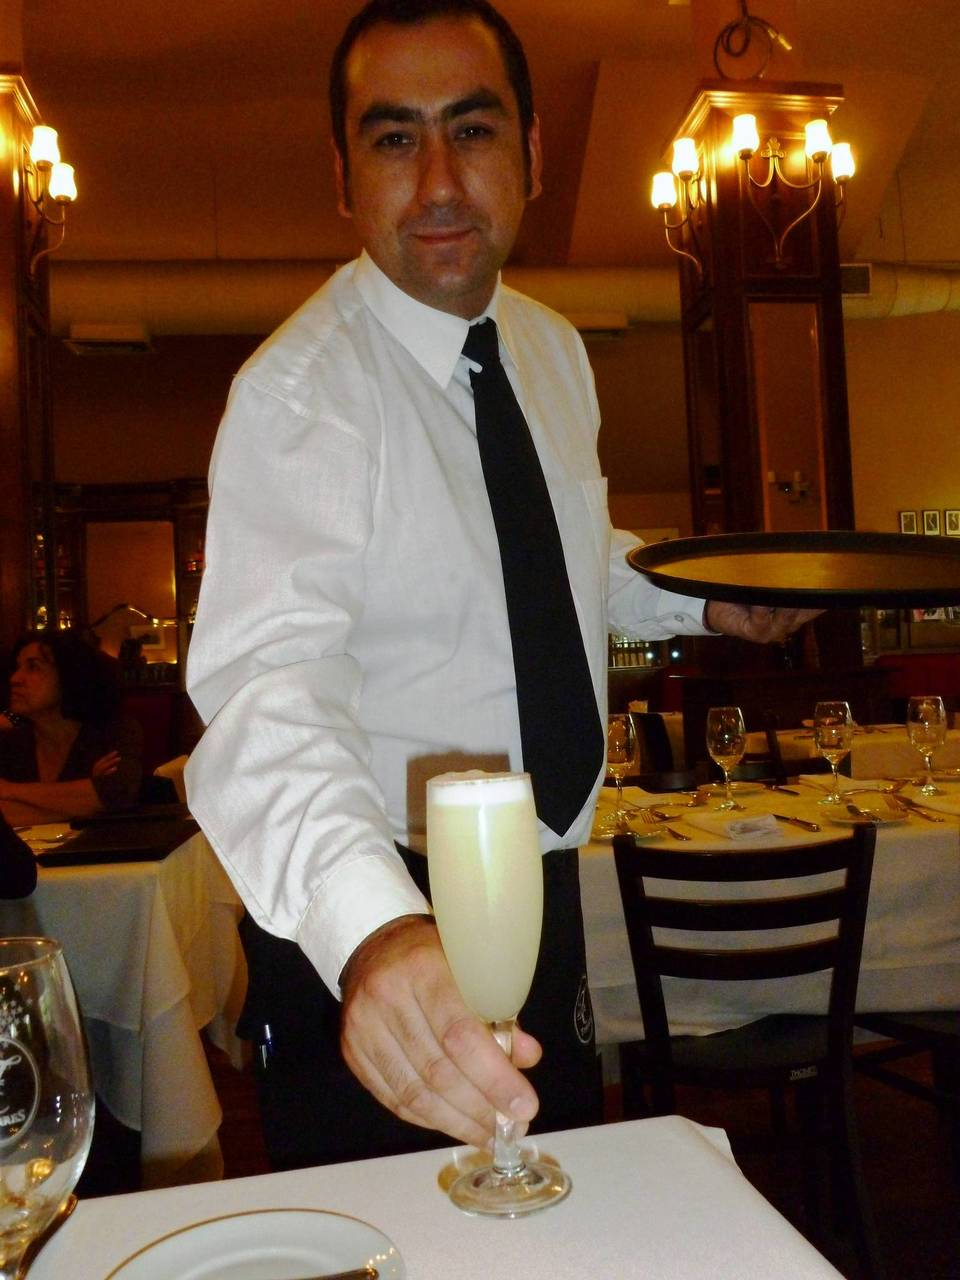 A frothy pisco sour rates black tie service at Confiteria Torres, one of Santiago's most venerated restaurants, since 1879.